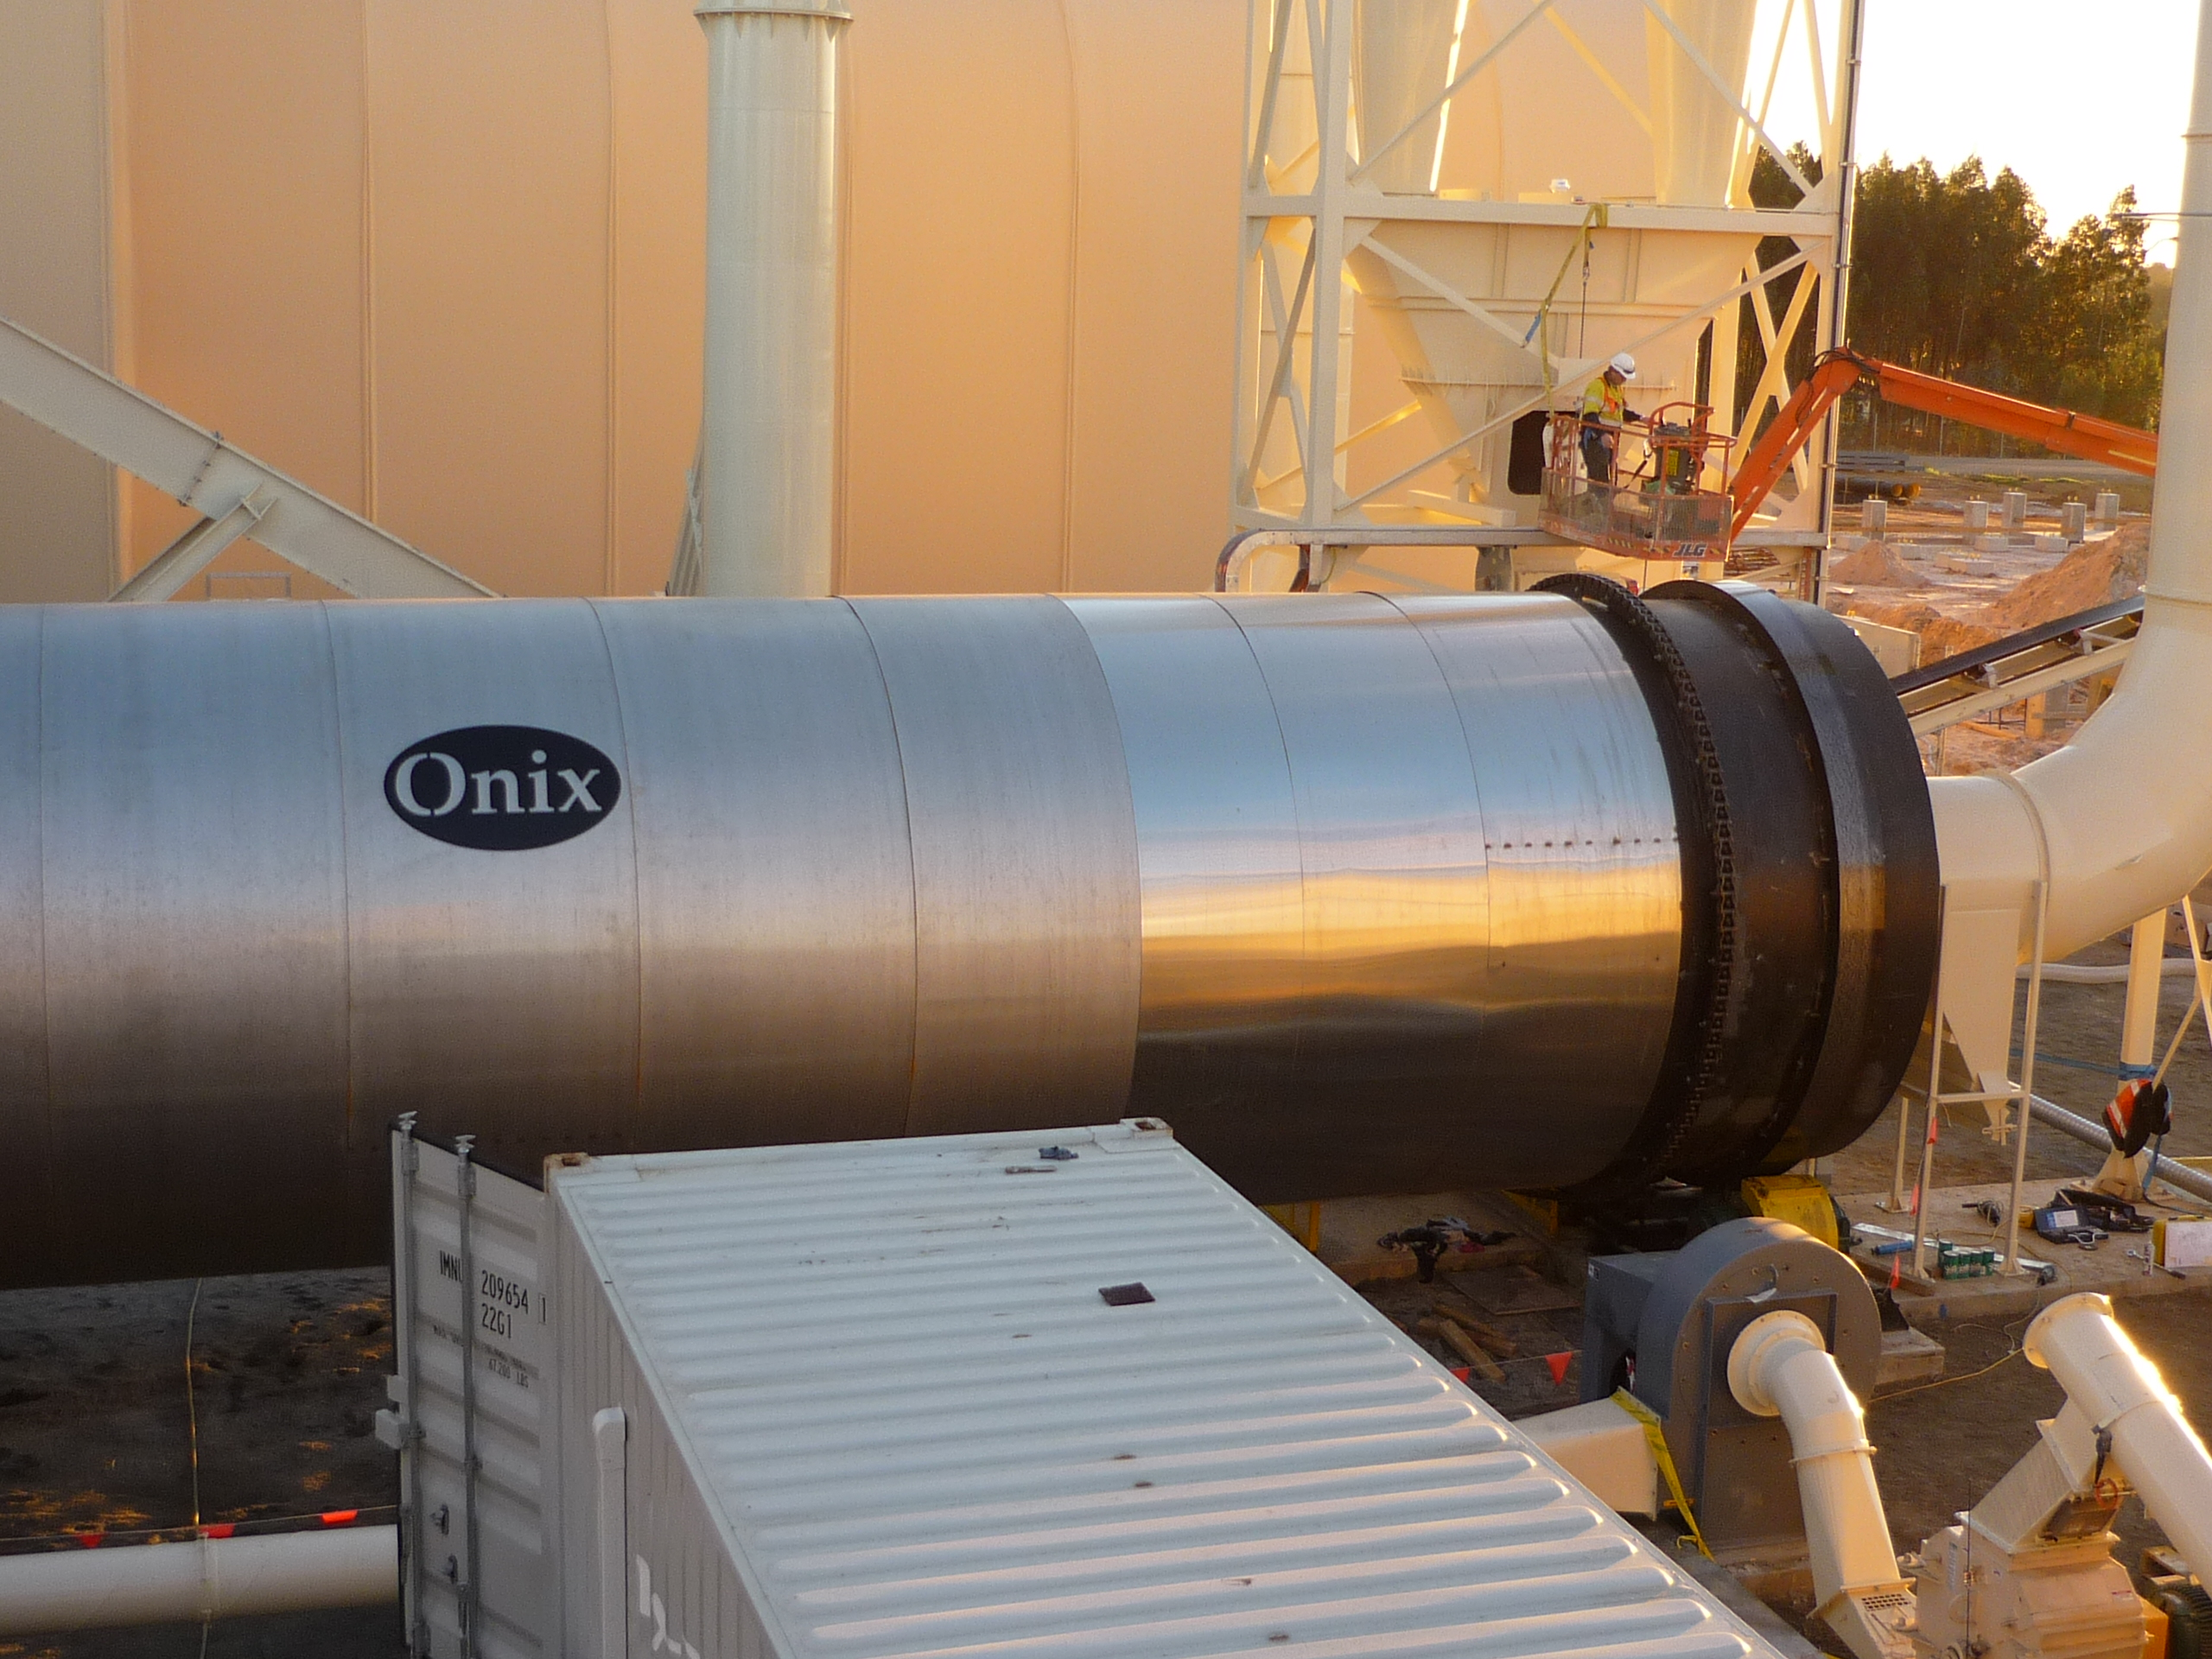 rotary dryer pollution control onix